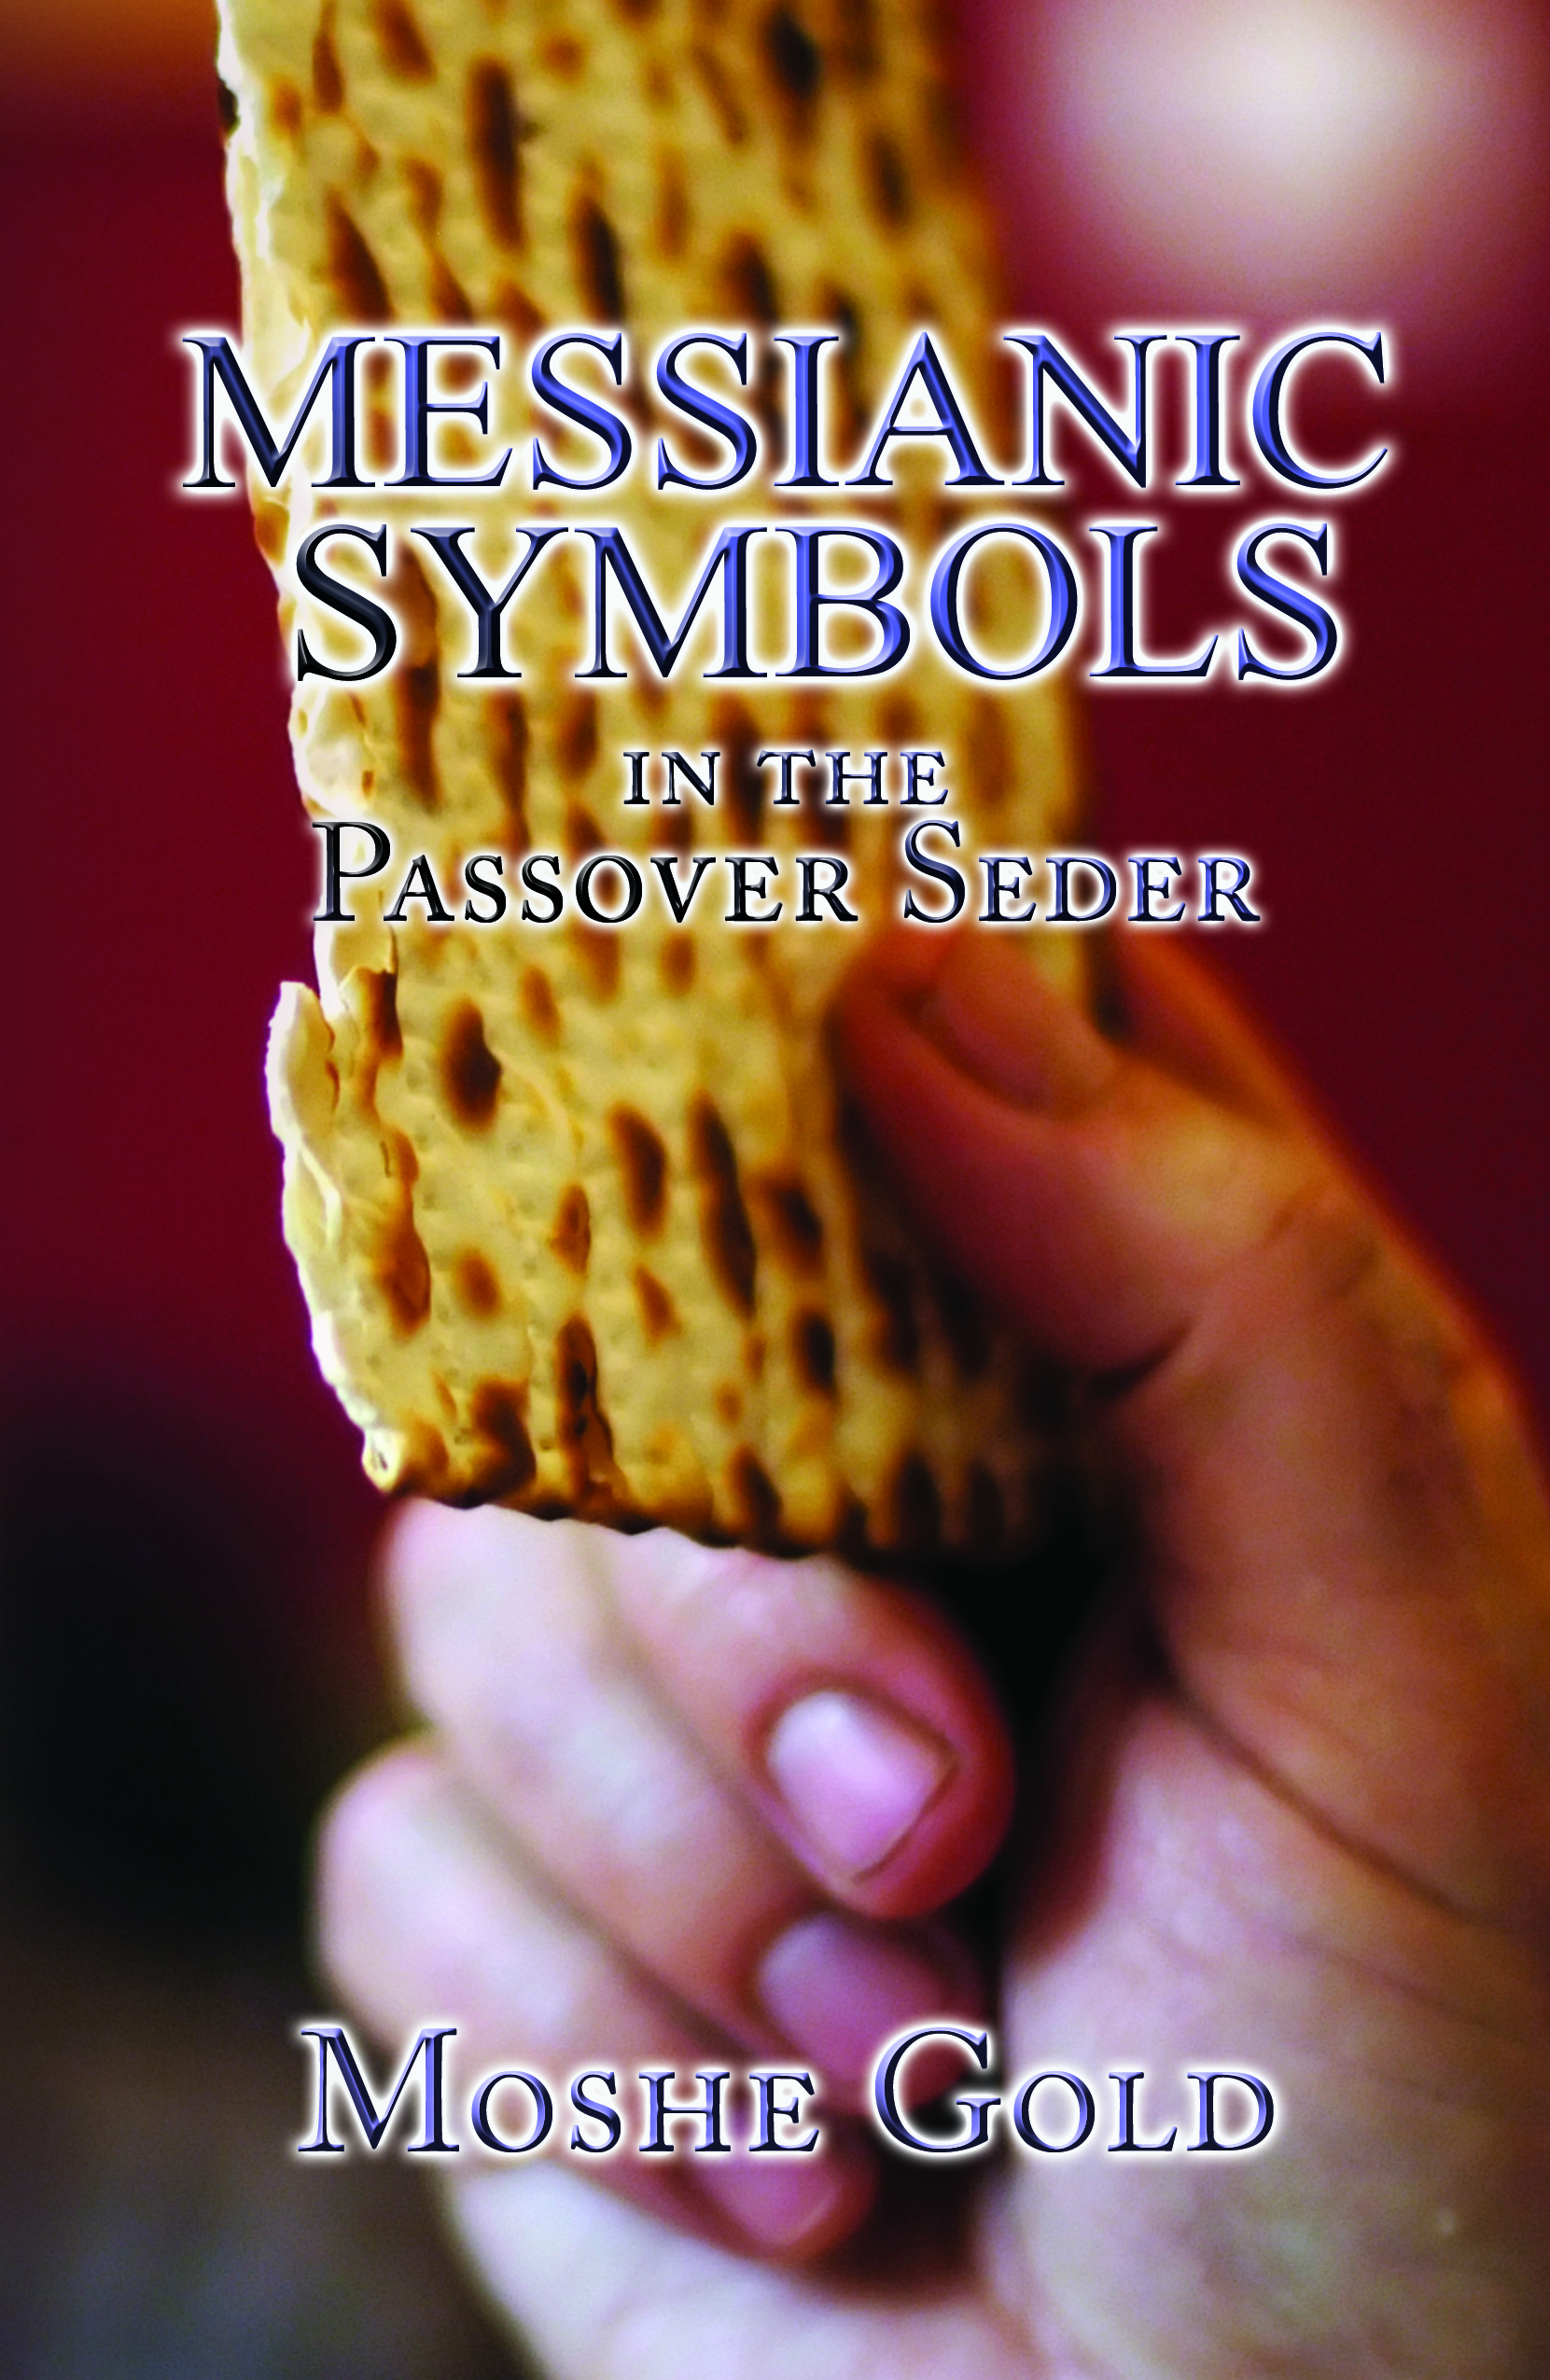 Messianic Symbols in the Passover Seder